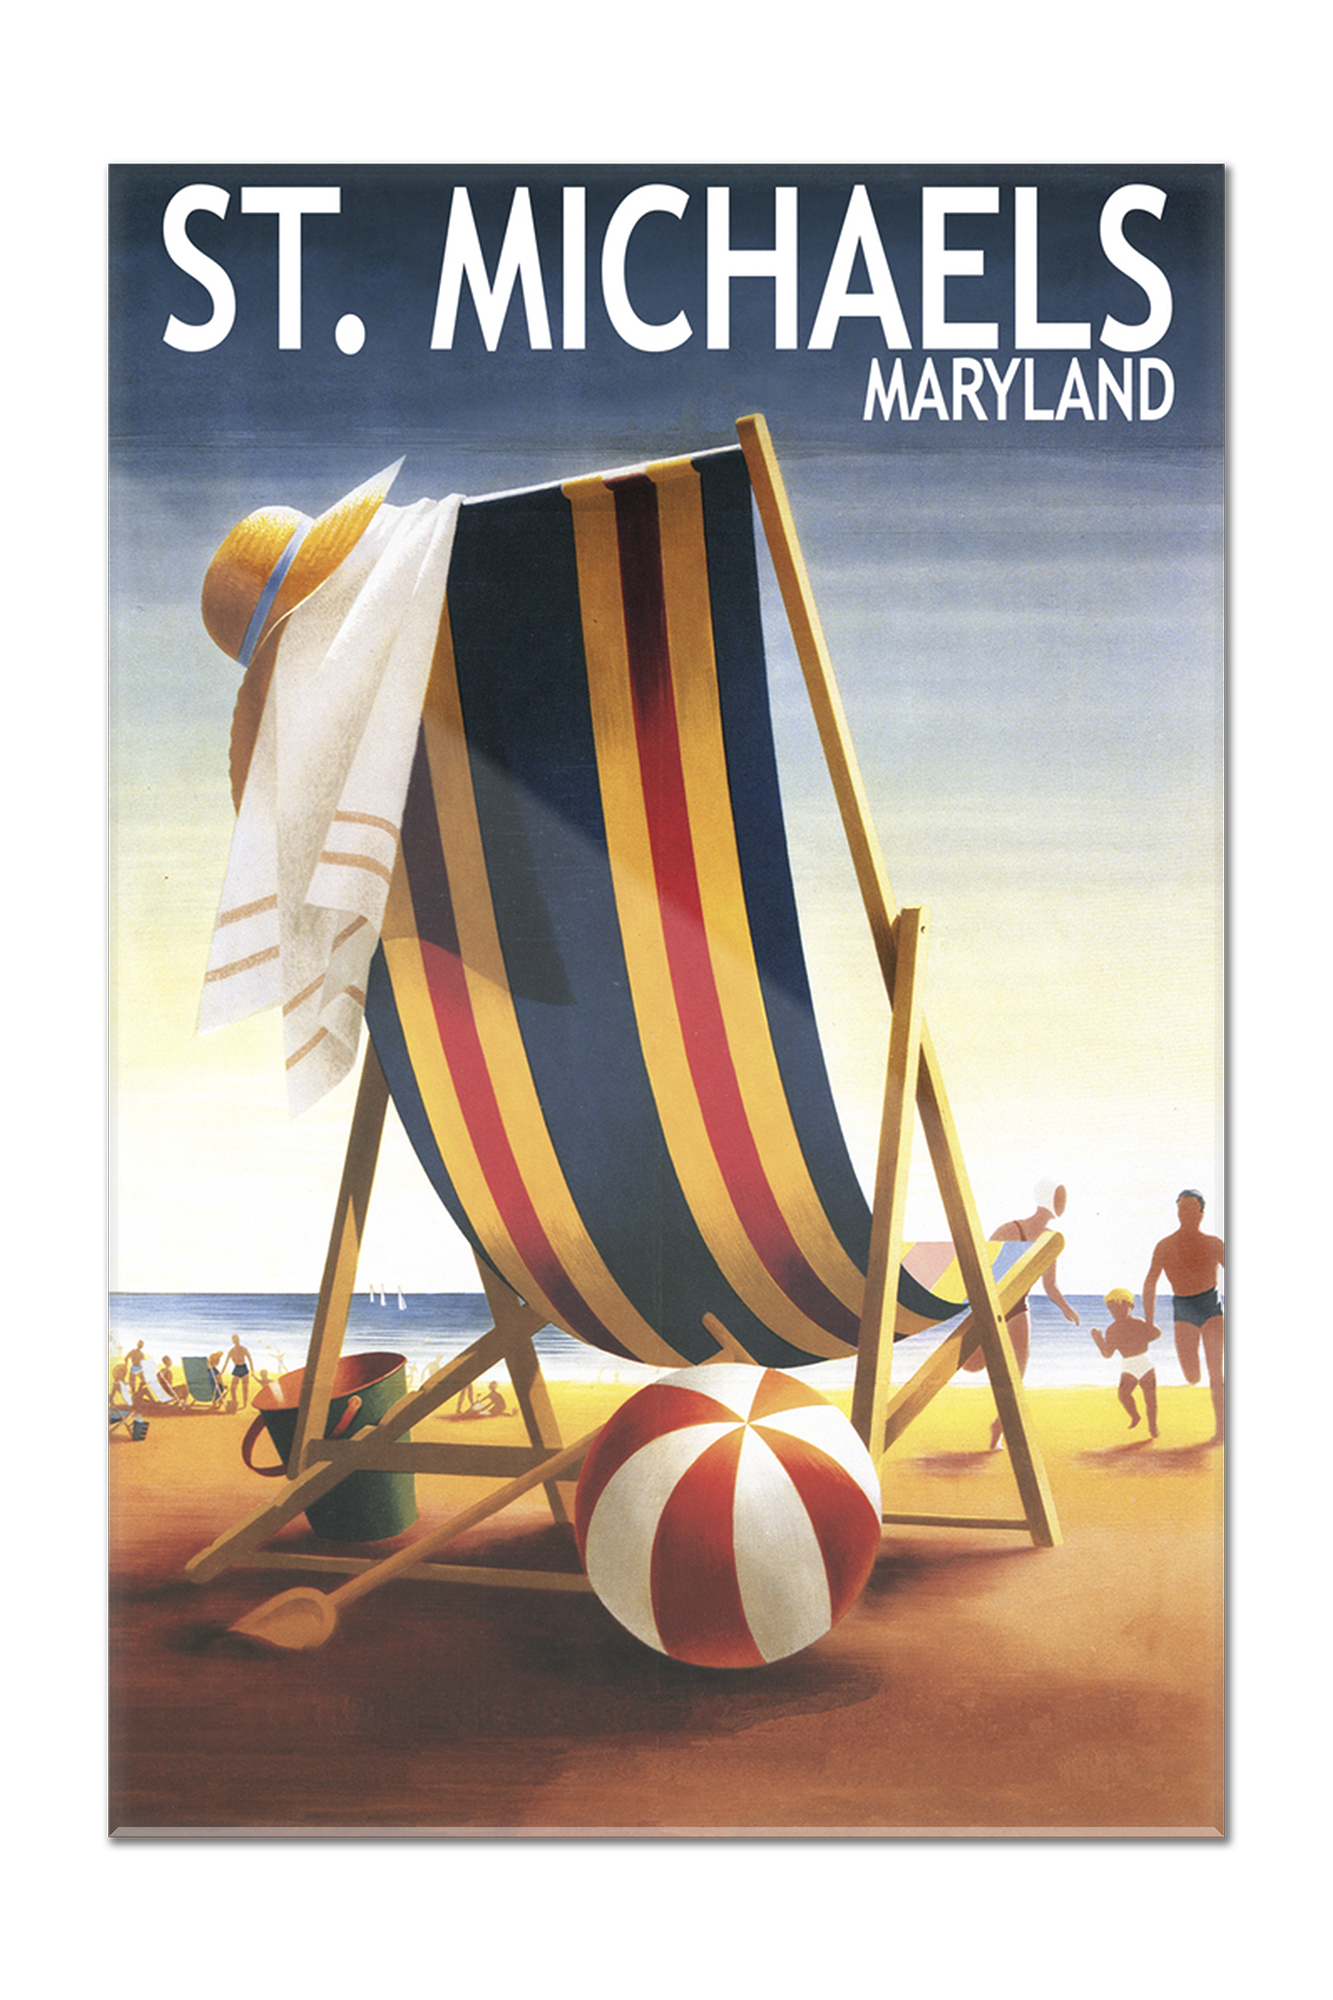 chair covers michaels folding chairs for sale cheap st maryland beach and ball lantern press poster 8x12